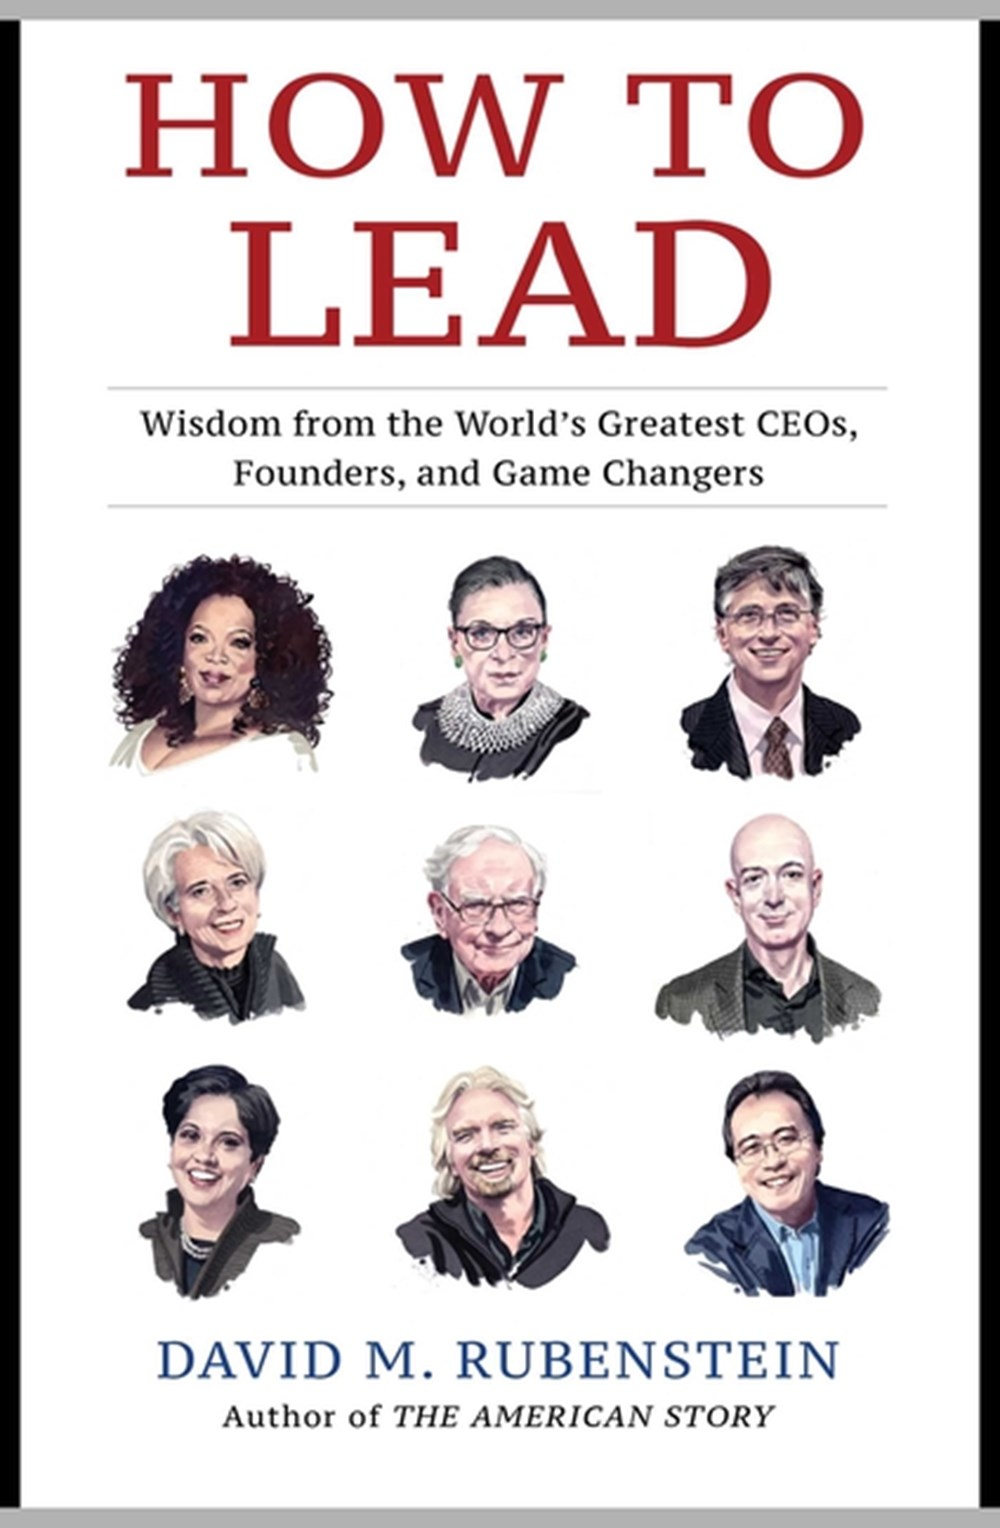 How to Lead Wisdom from the World's Greatest Ceos, Founders, and Game Changers